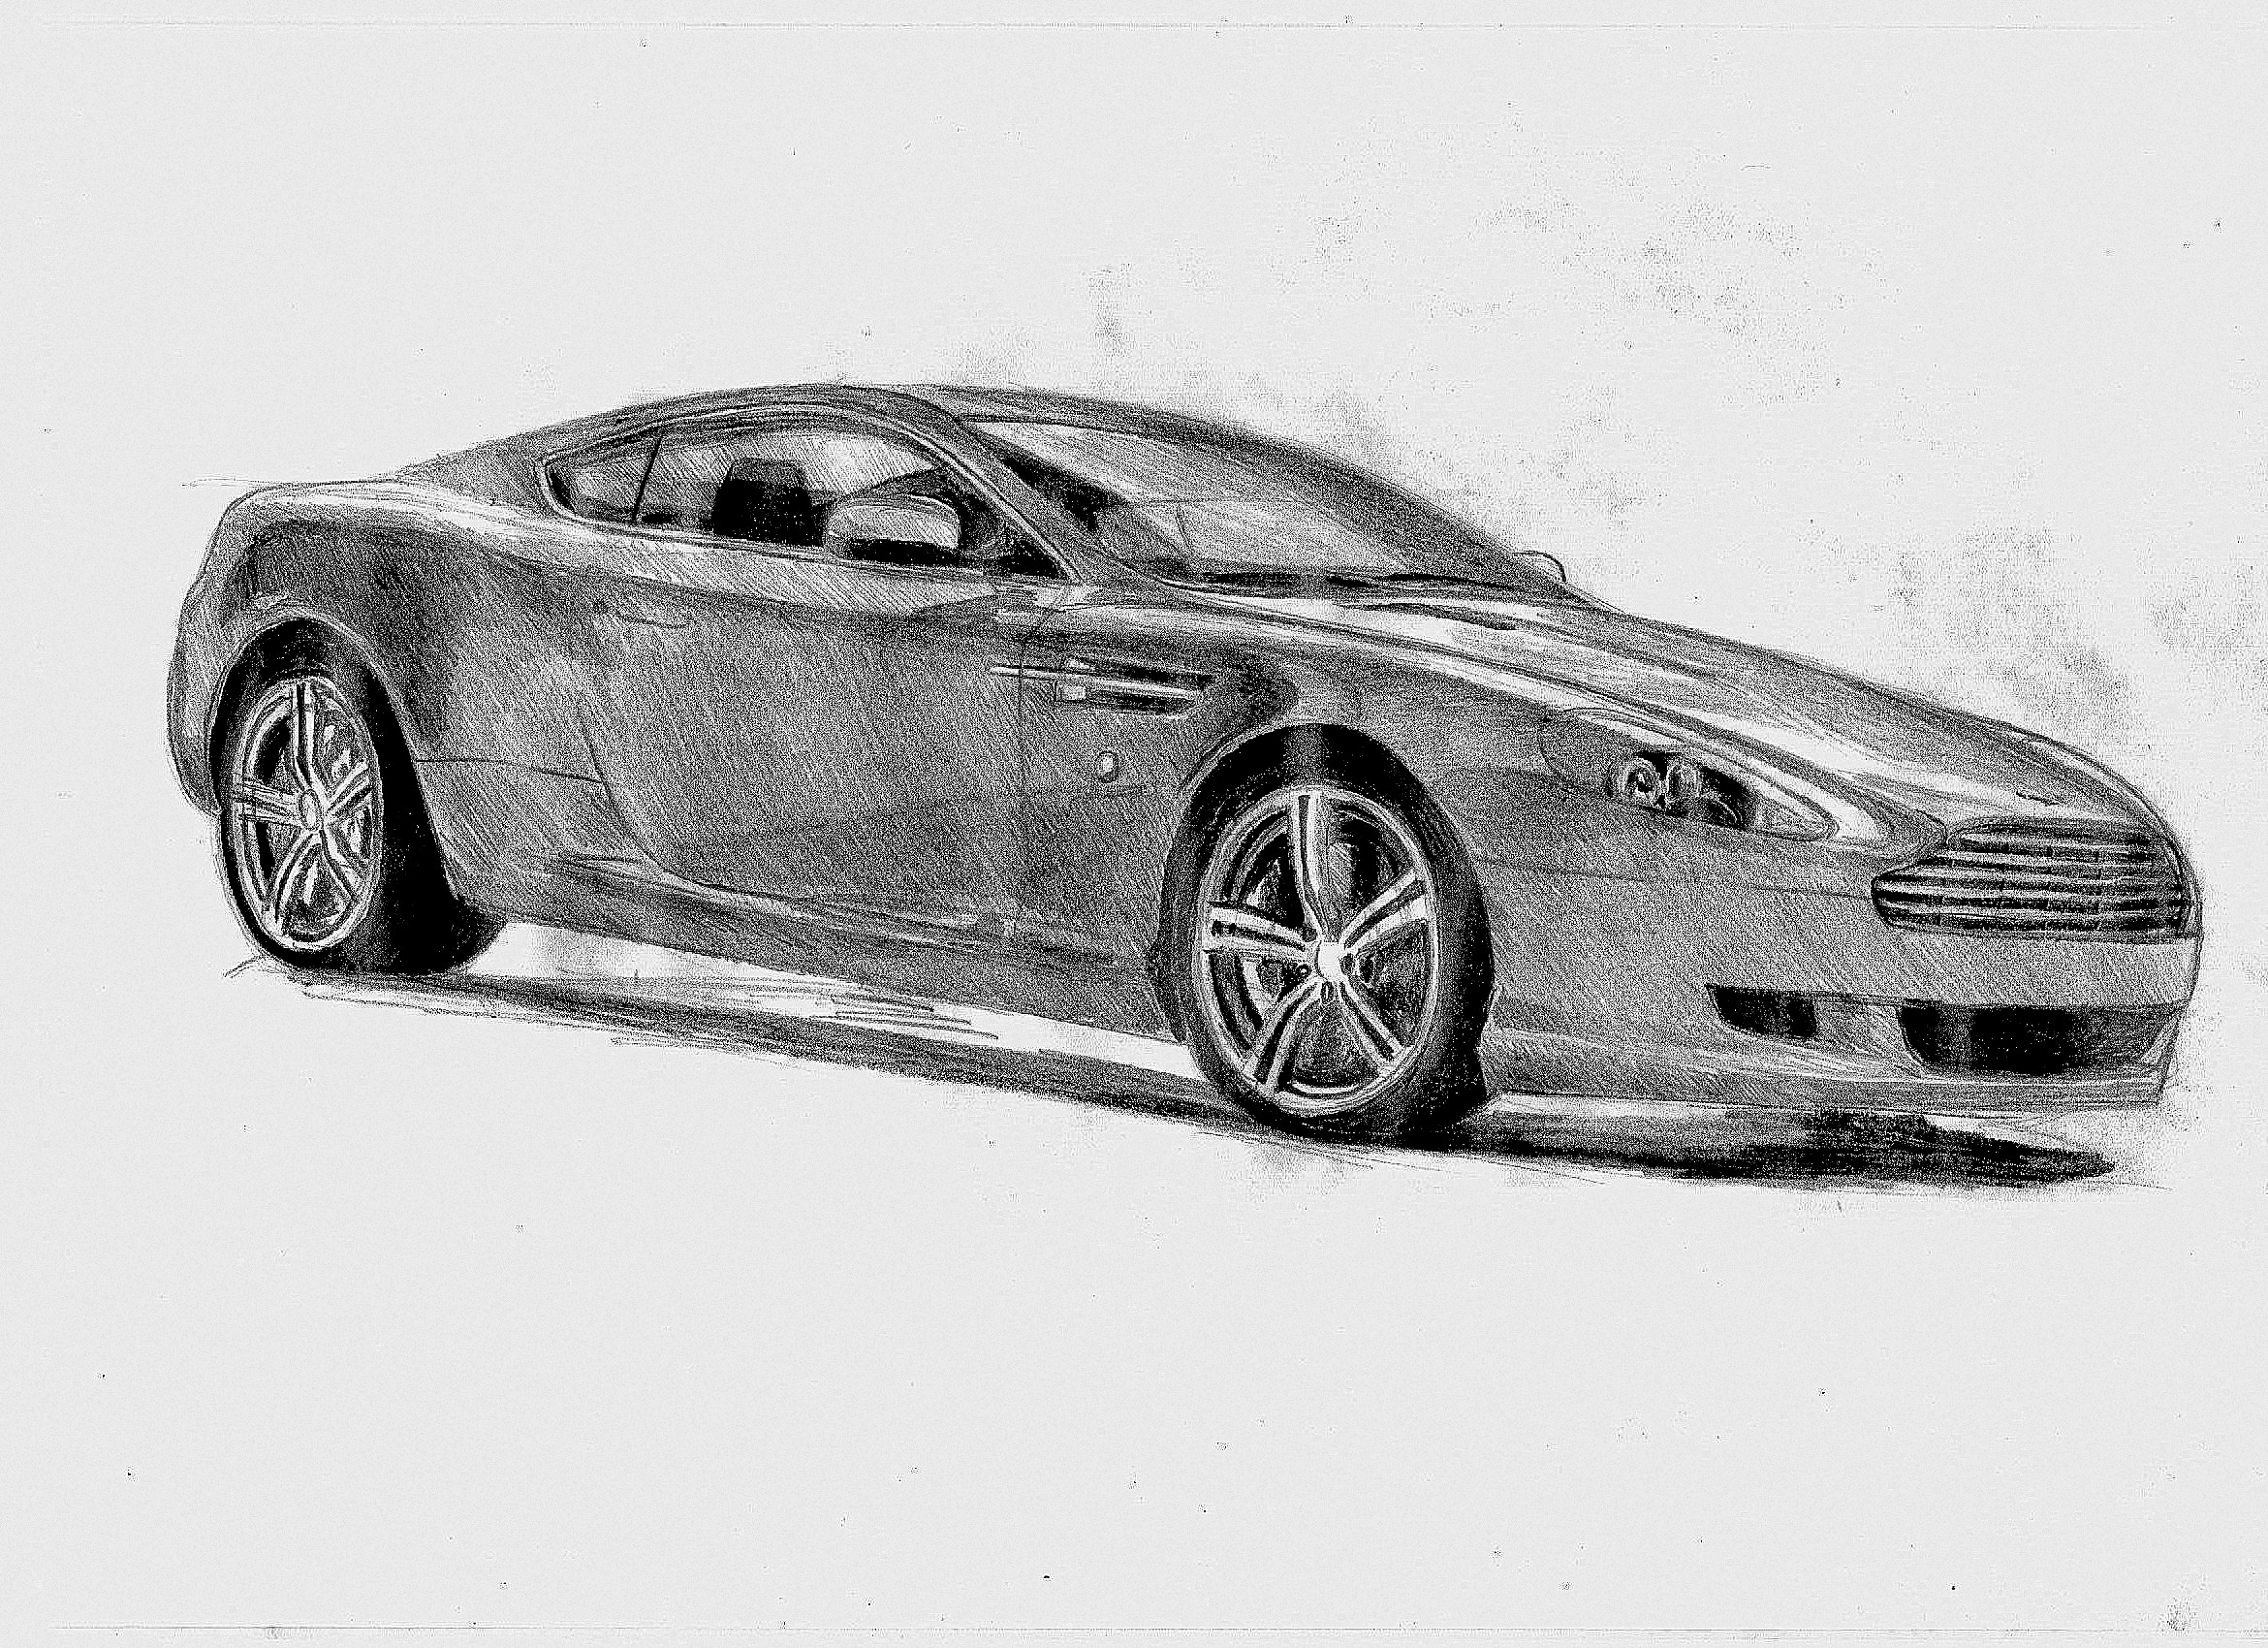 It S Been A Long Time Since I Posted In This Community So Here S A Drawing Of An Aston Martin Db9 I Made Last Week